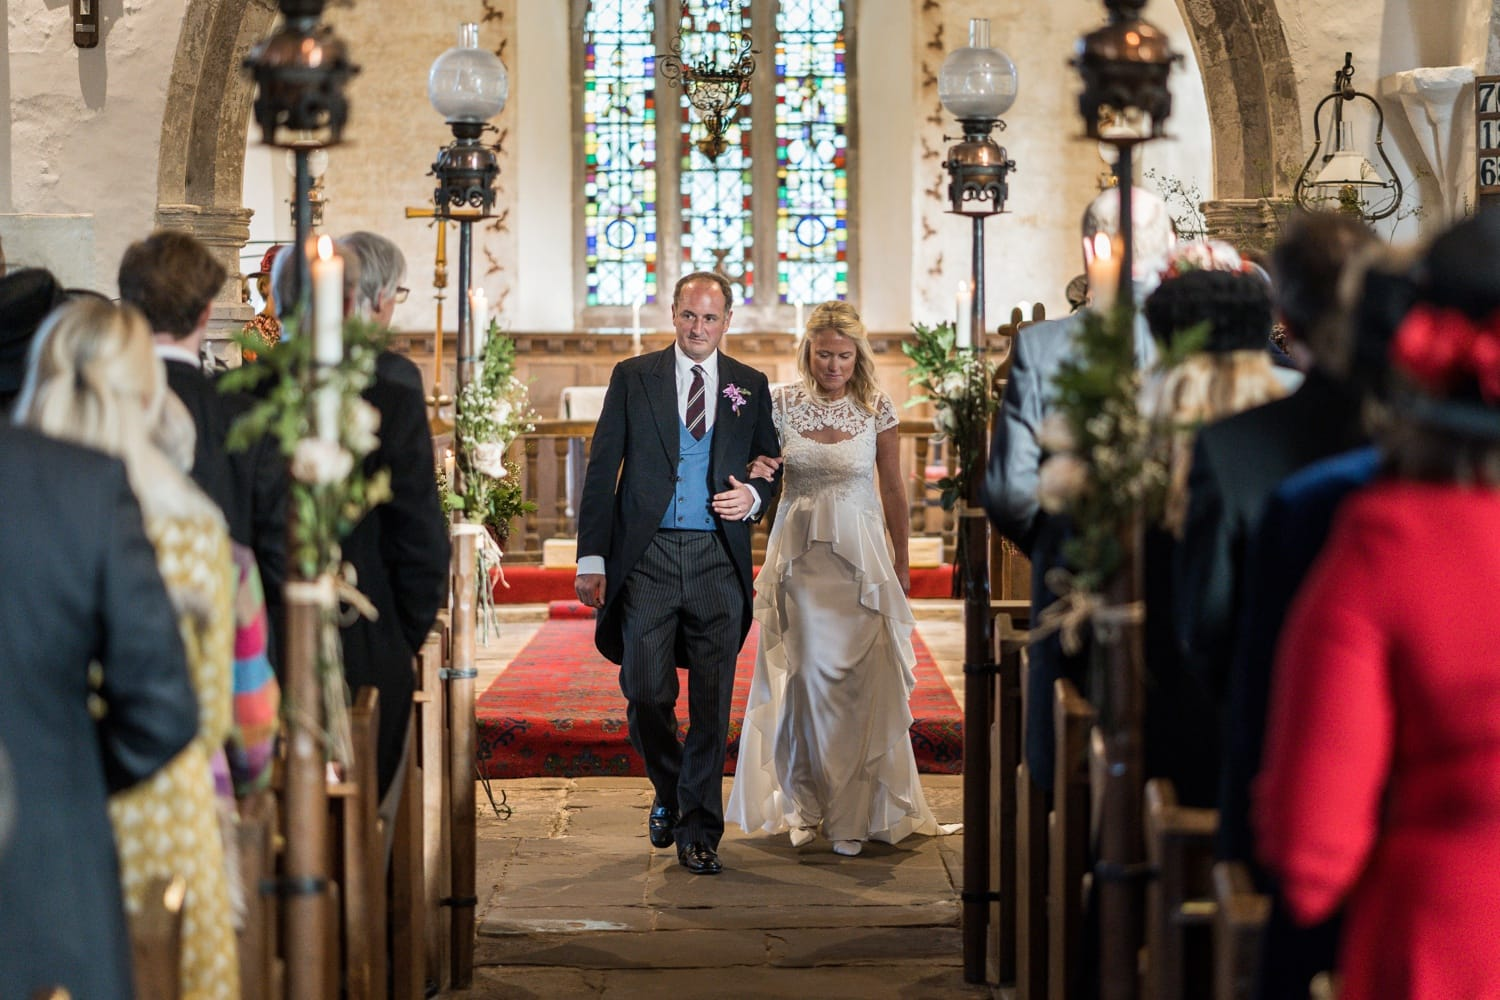 Bride and groom walking down aisle at St Brigit's Church, Skenfrith, Monmouthshire